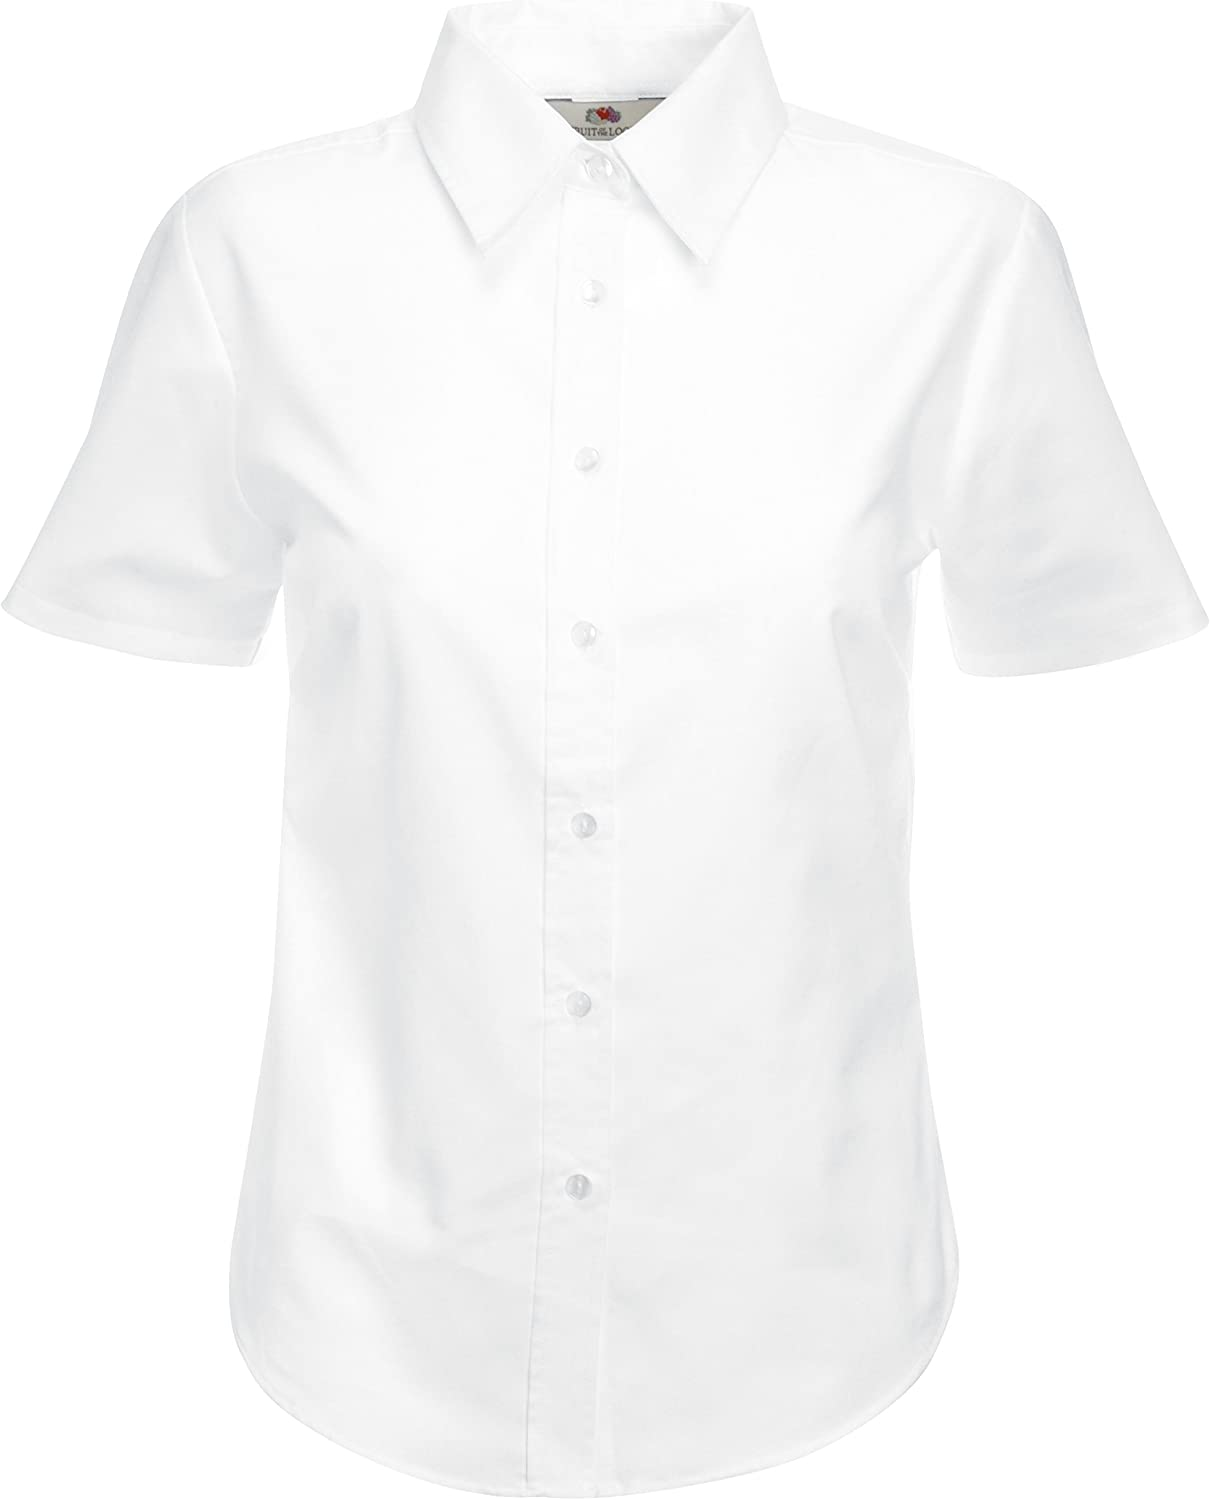 Girls Back To School 2 White Short Sleeved Shirts Age 3-4 Years New